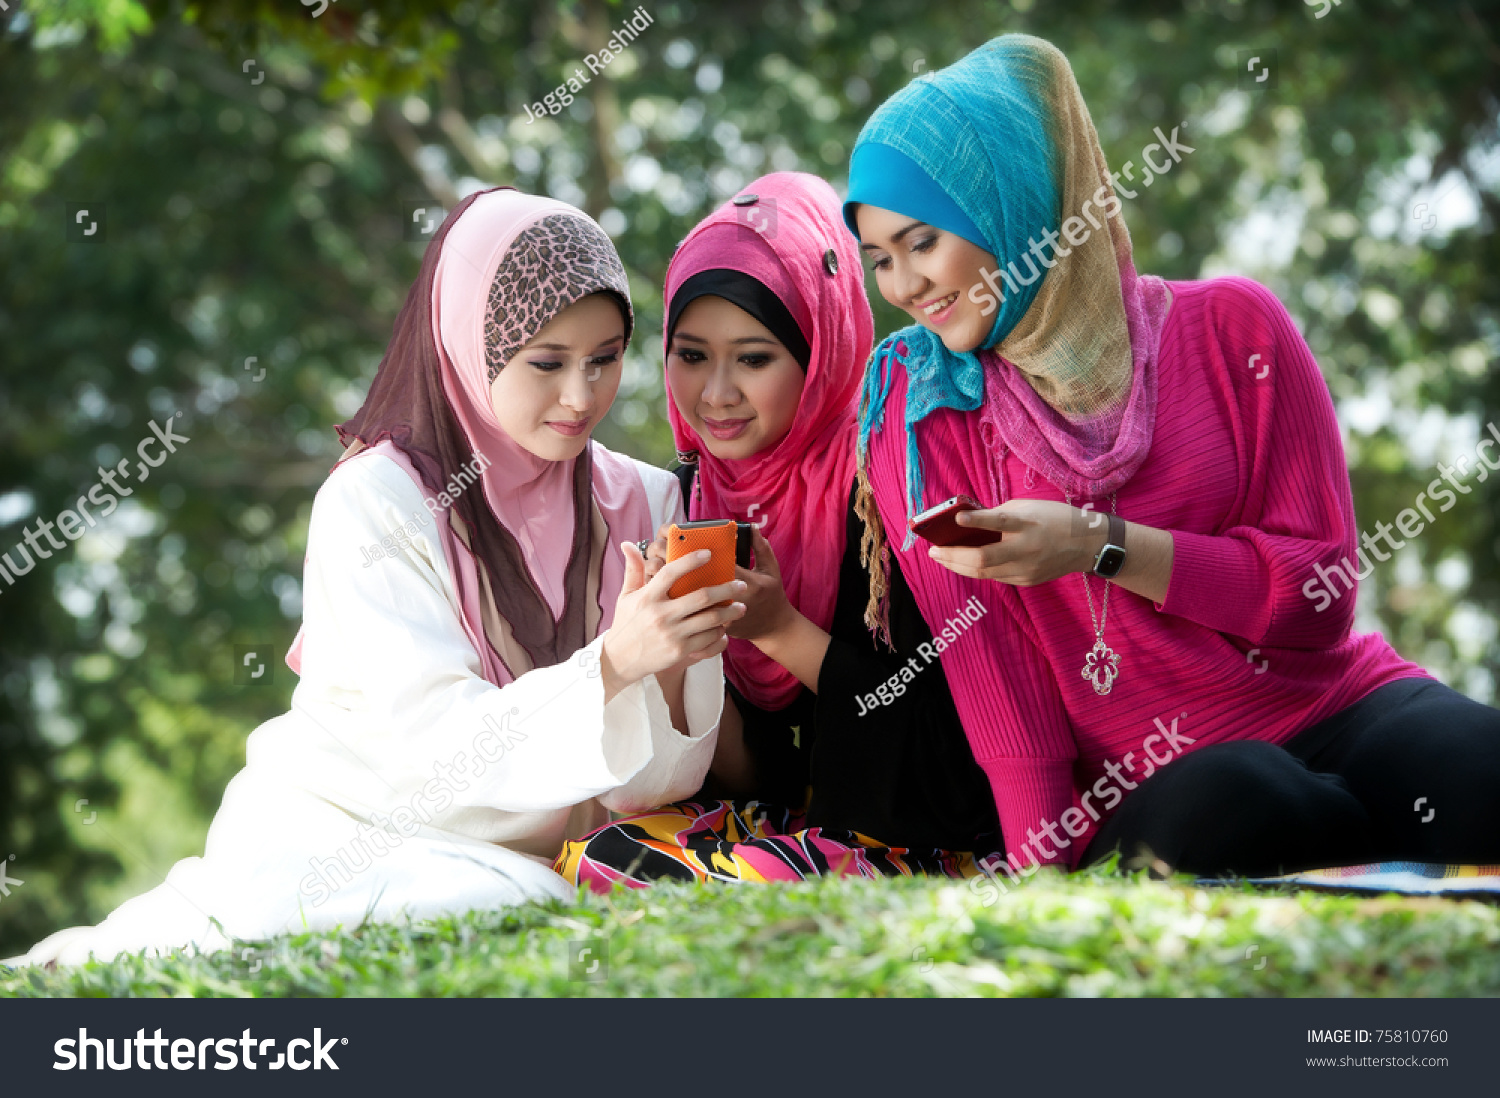 park falls single muslim girls Falling in love with muslim girl what on earth do i do when thinking about dating it is completely permissible for muslim men to marry non-muslim women.